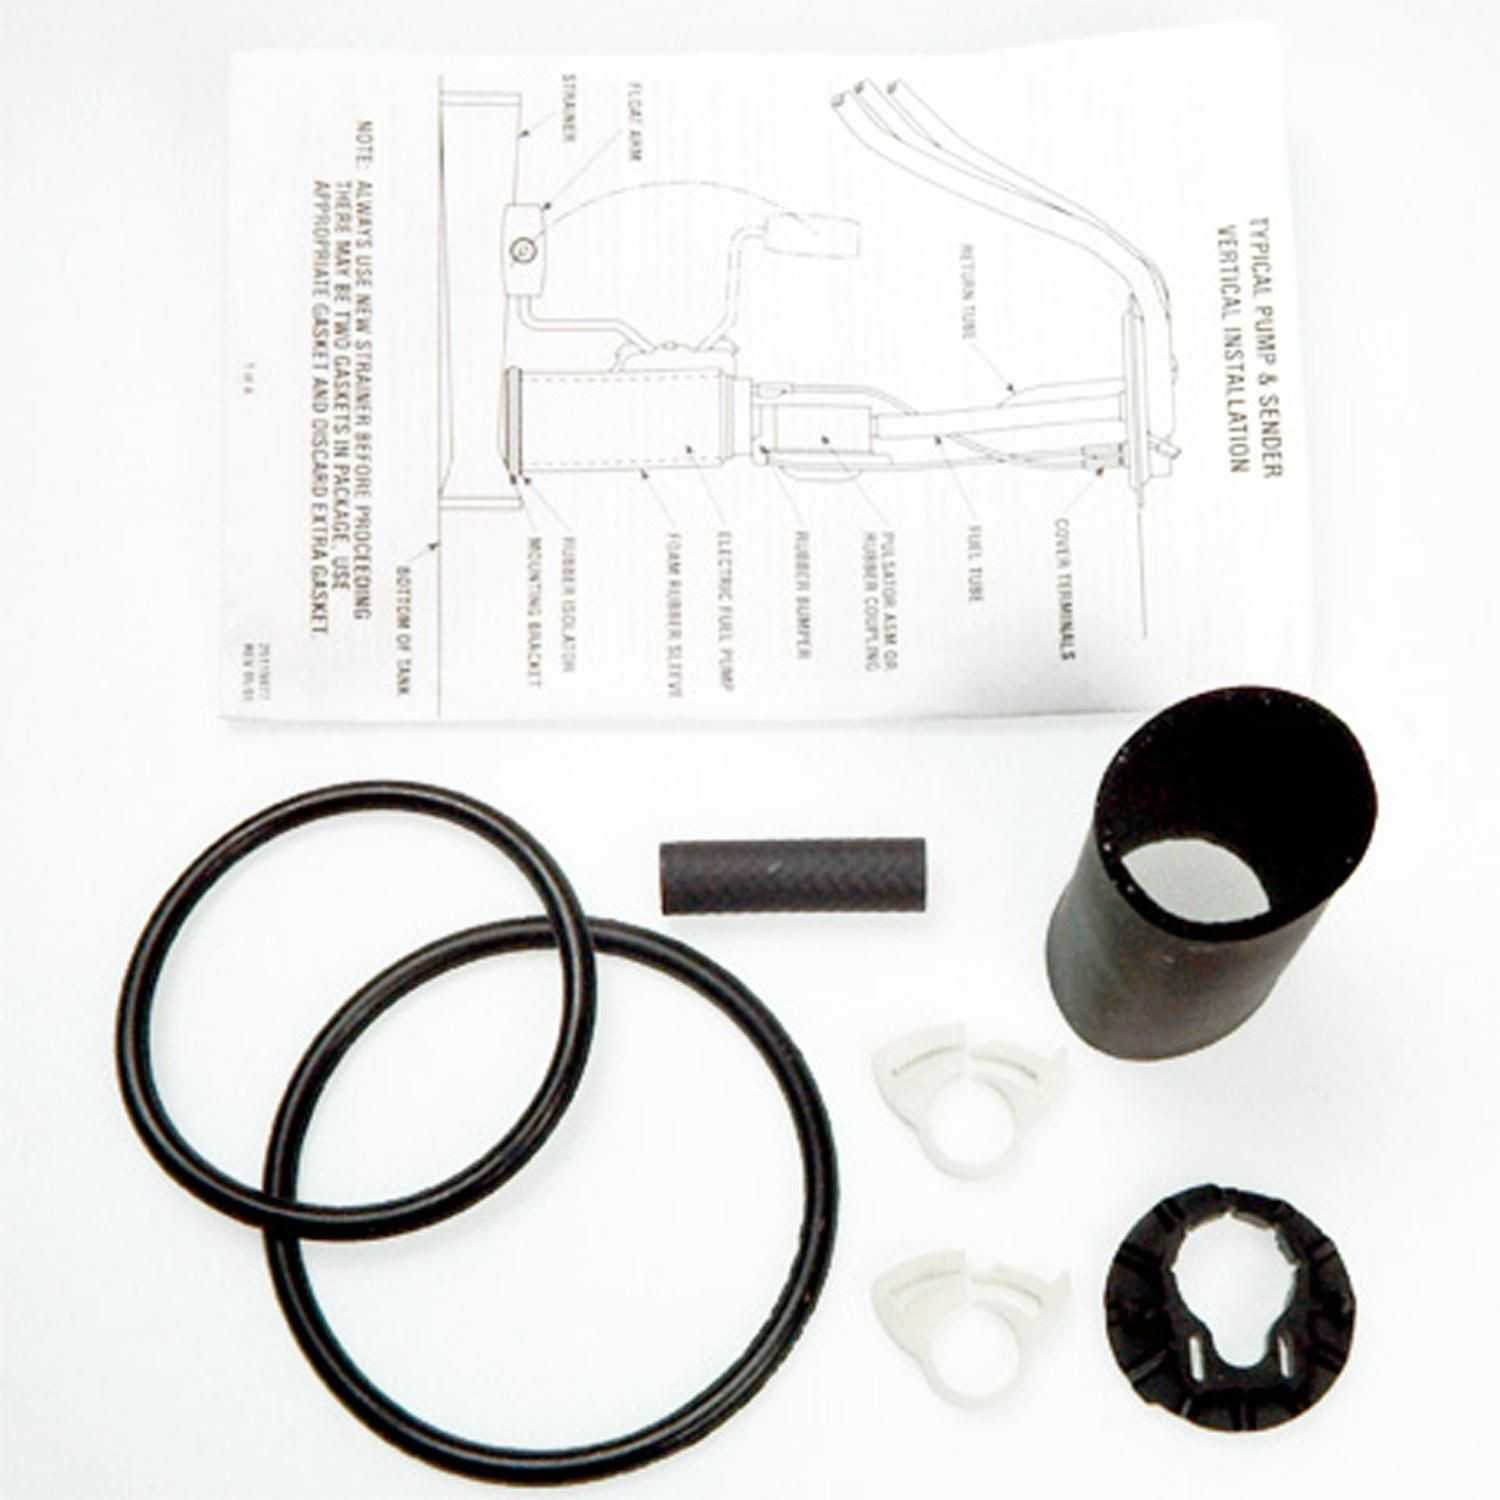 MAGNETI MARELLI OFFERED BY MOPAR - Electric Fuel Pump - MGM 1AMFP00011